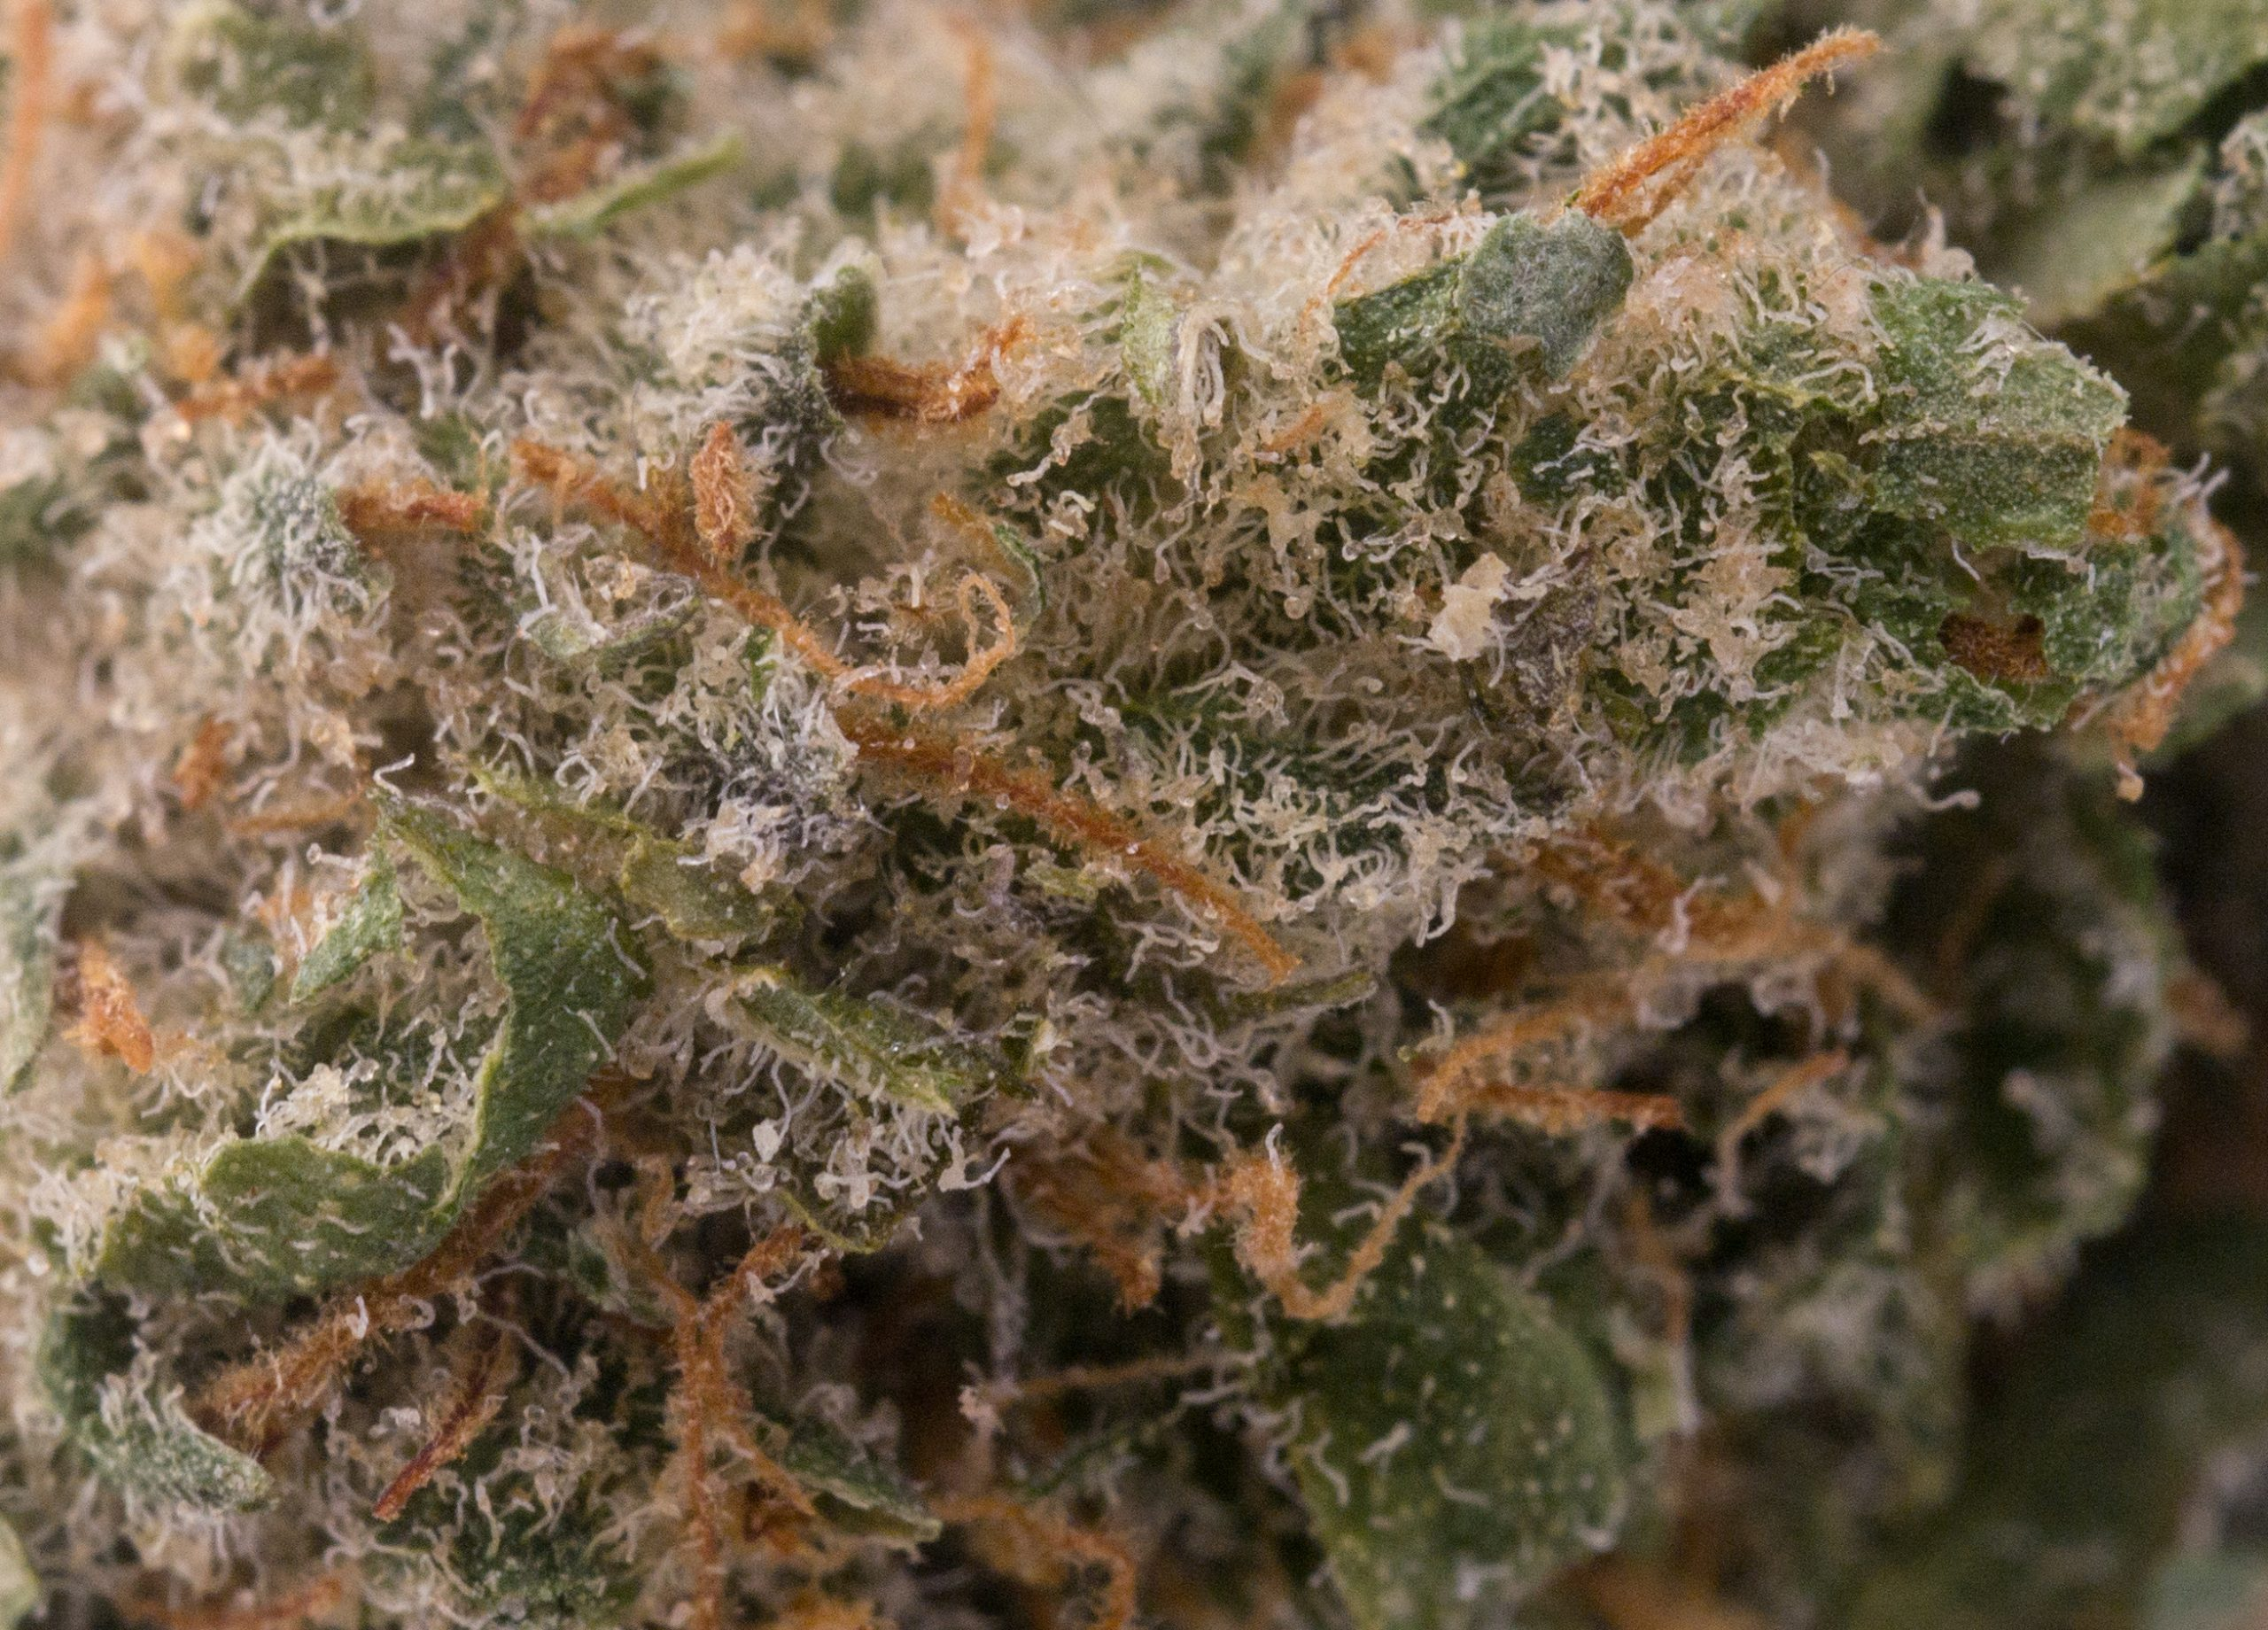 Fairly dense cloudy white trichomes